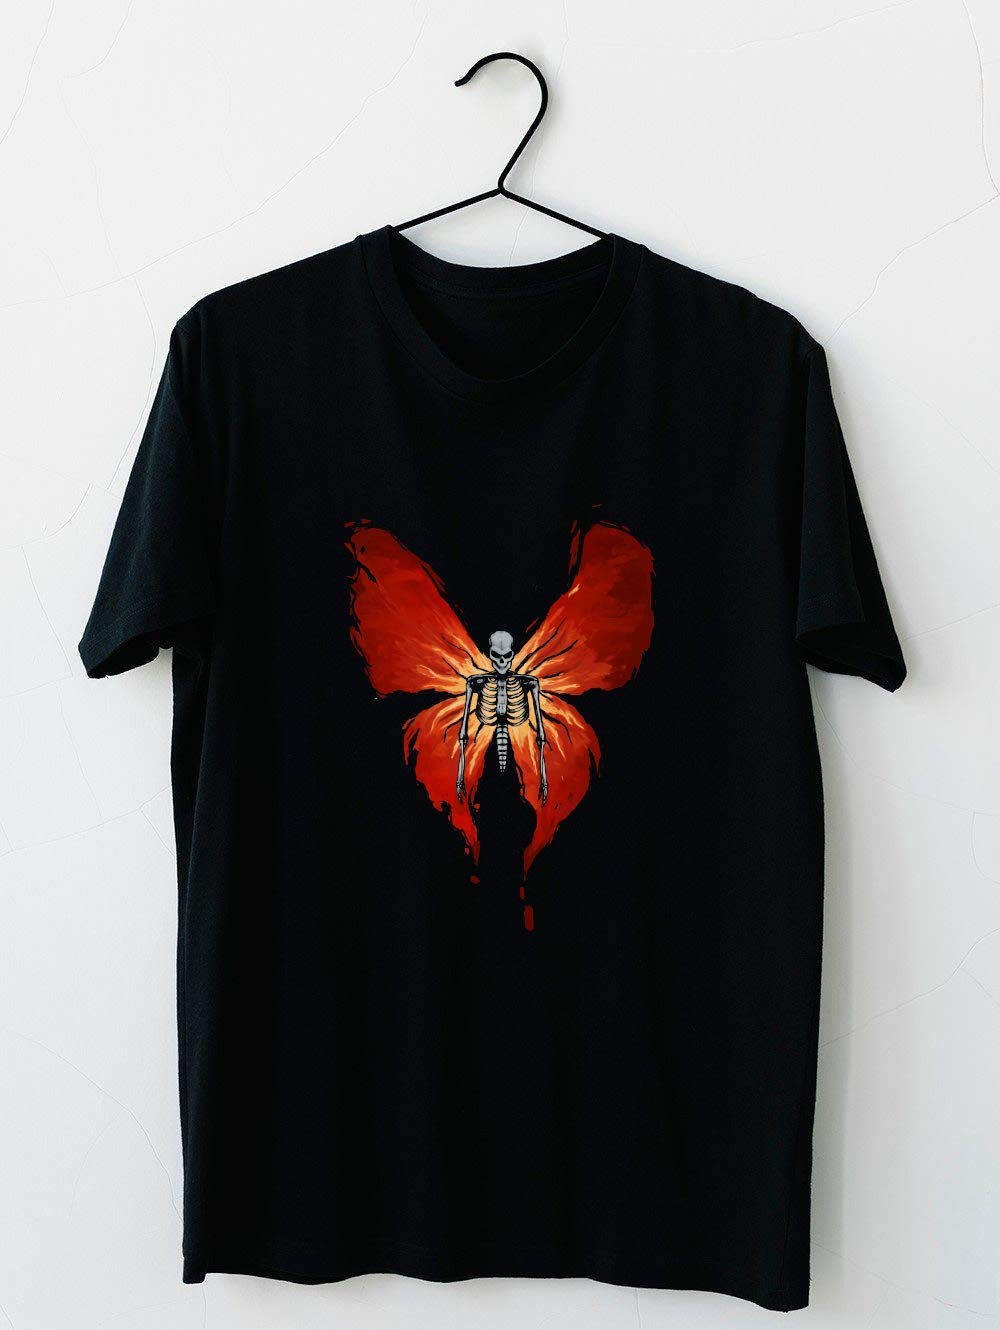 Before The Storm Skelefly T Shirt For Unisex